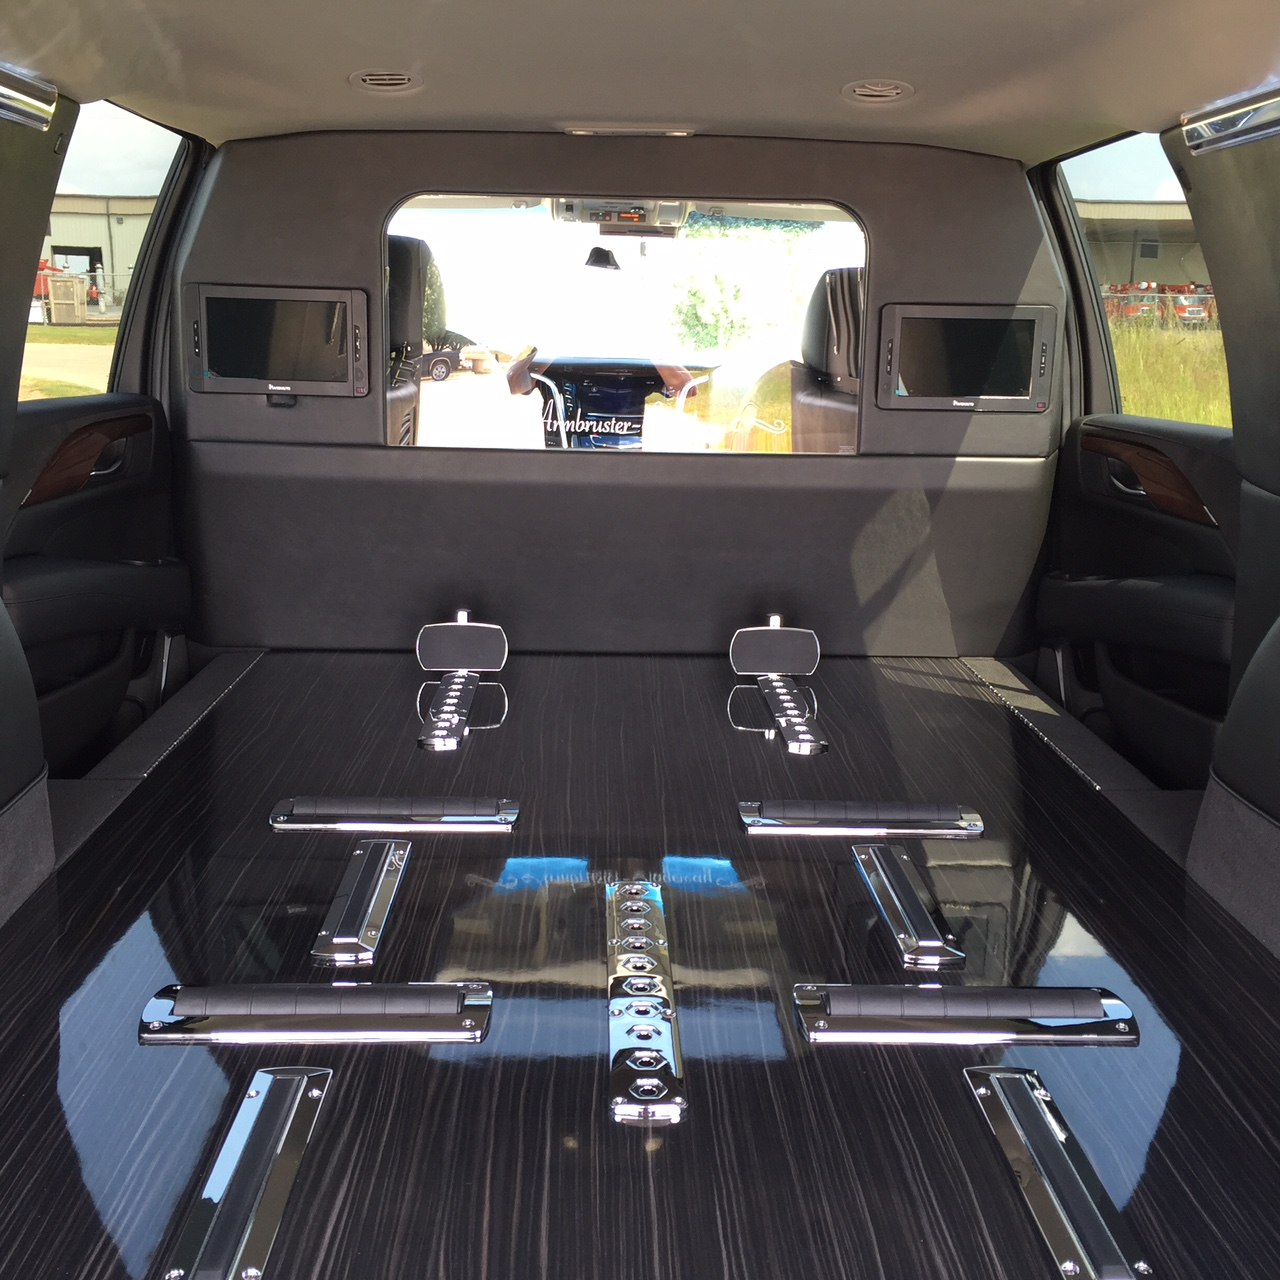 Suburban Vehicles - Armbruster Stageway - Hearse Car